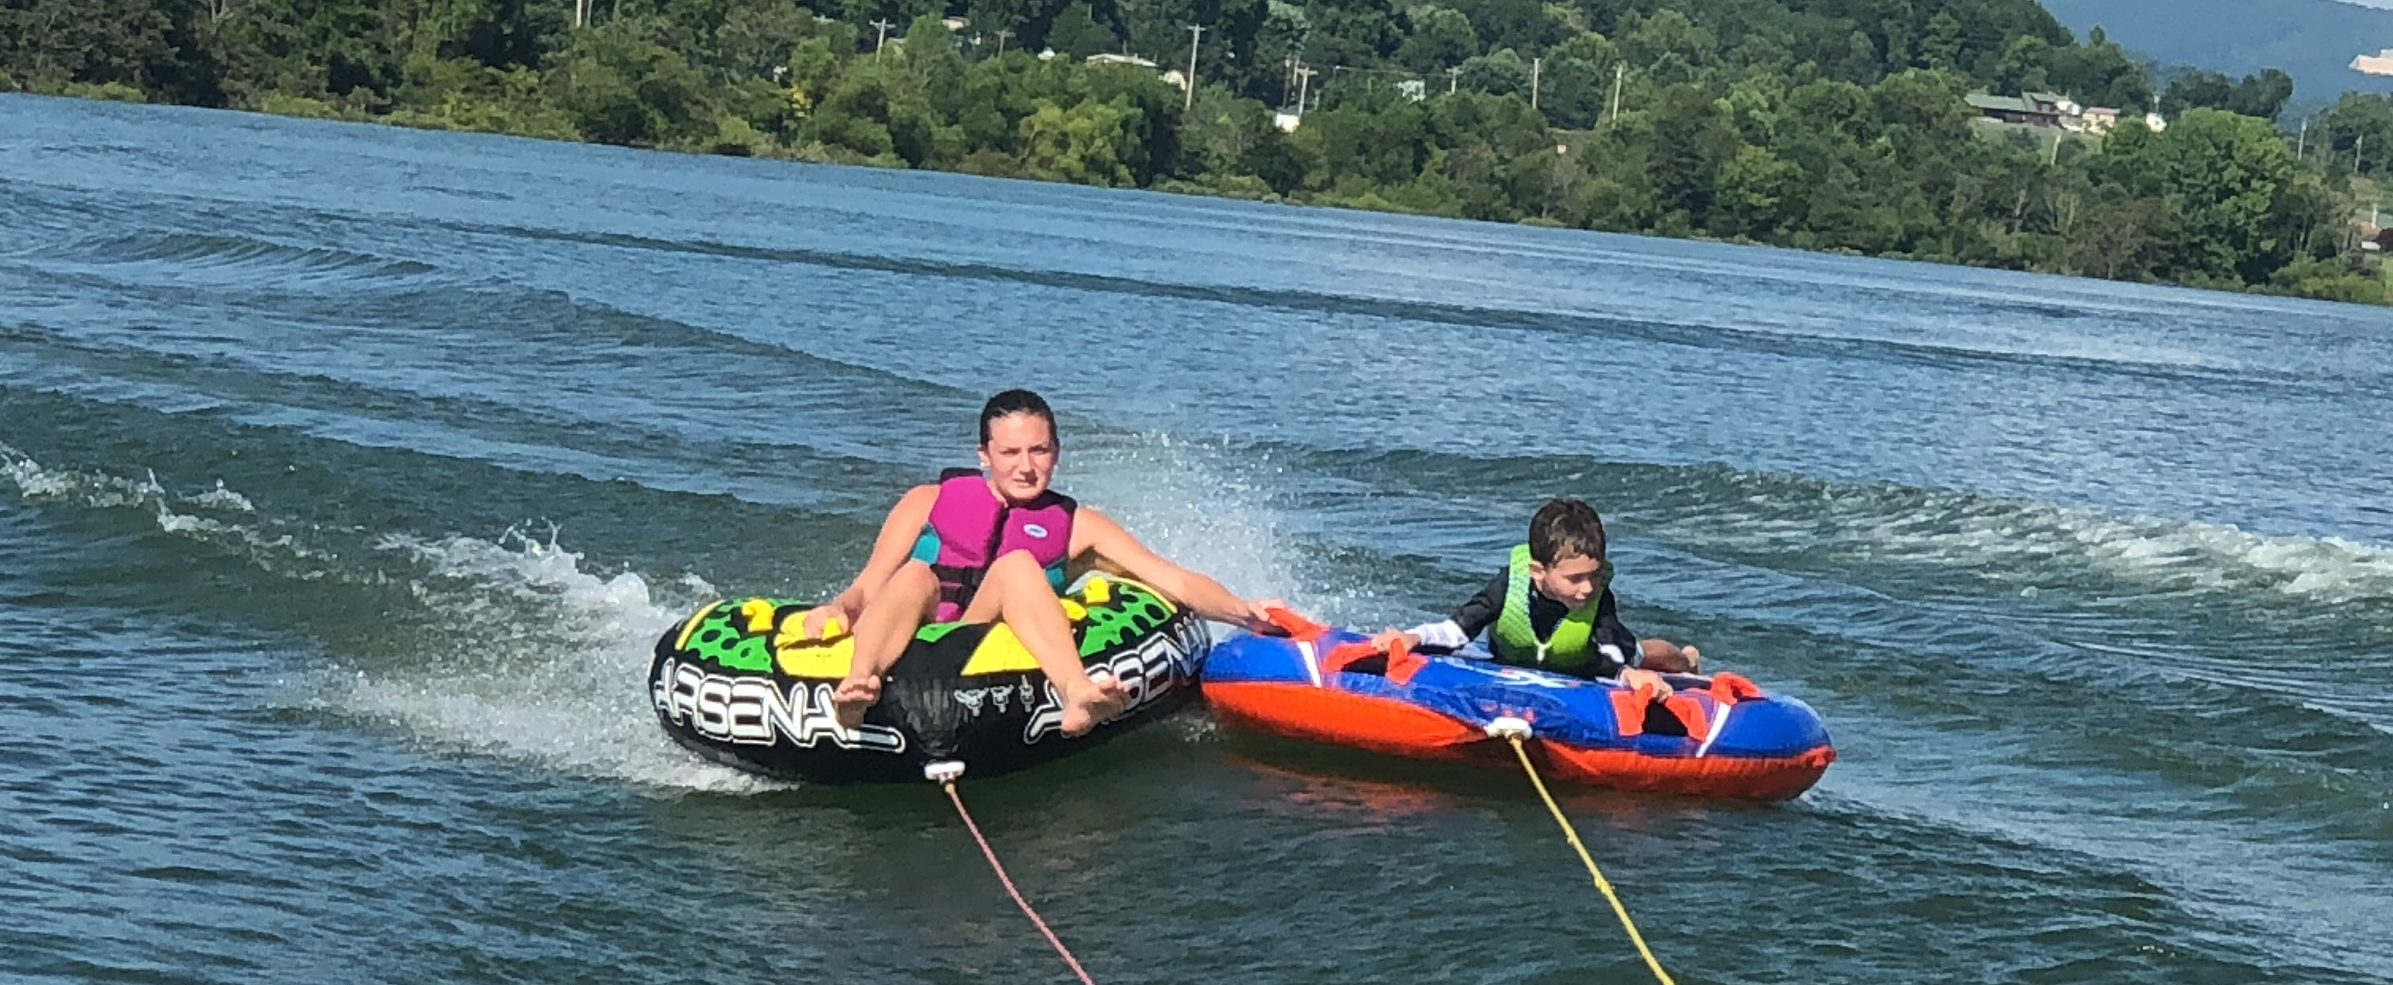 Fun times on the lake!